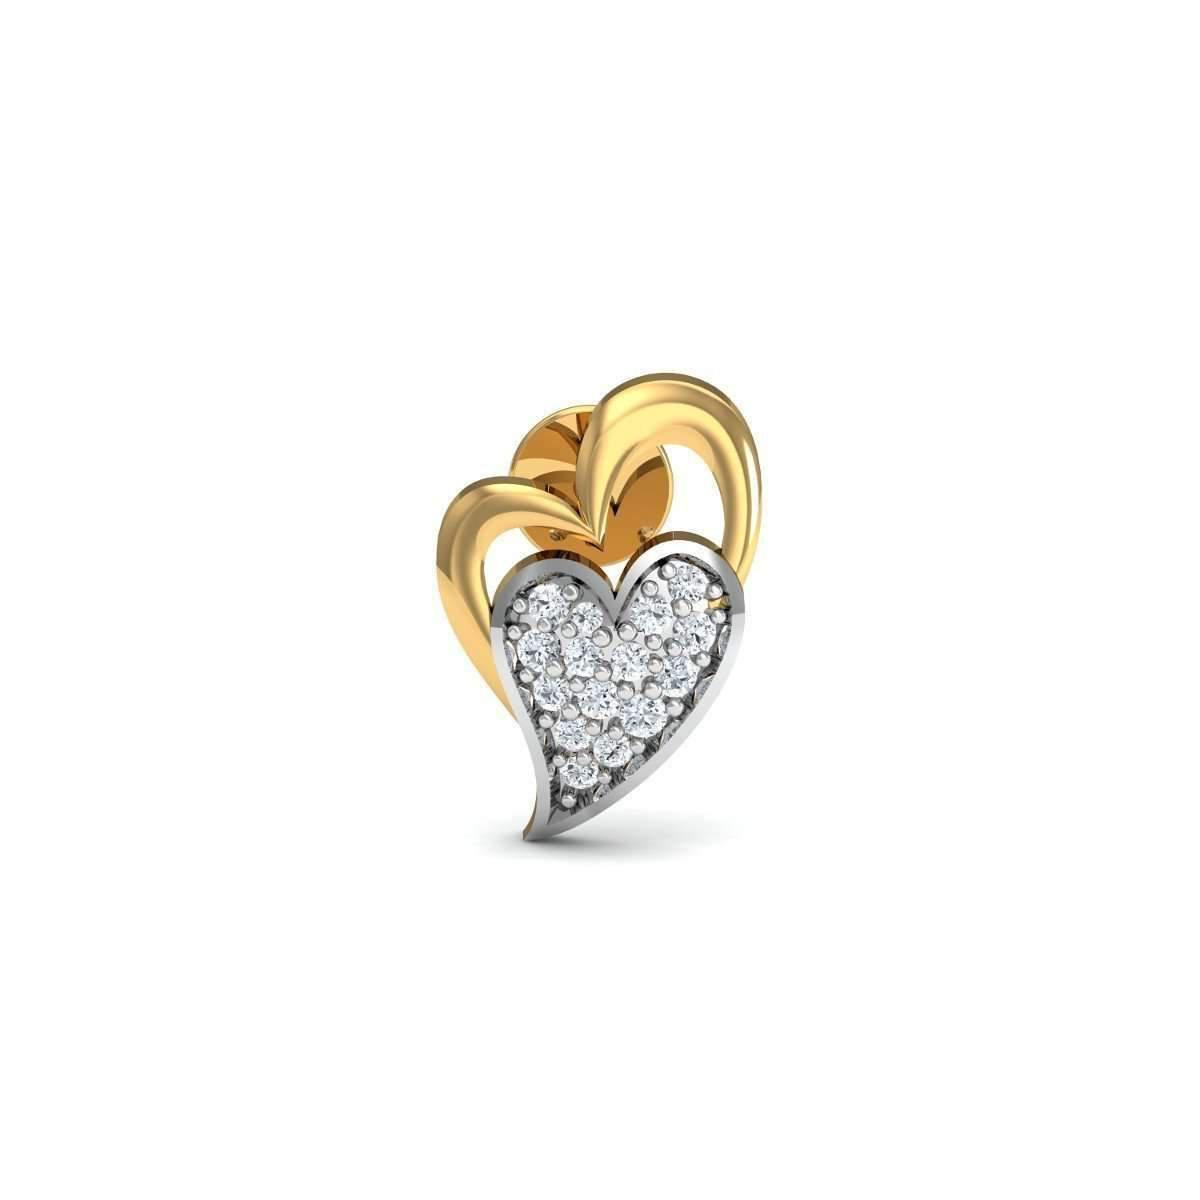 Diamoire Jewels Gusto 18kt Yellow Gold Diamond Stud Earrings FRDcSe